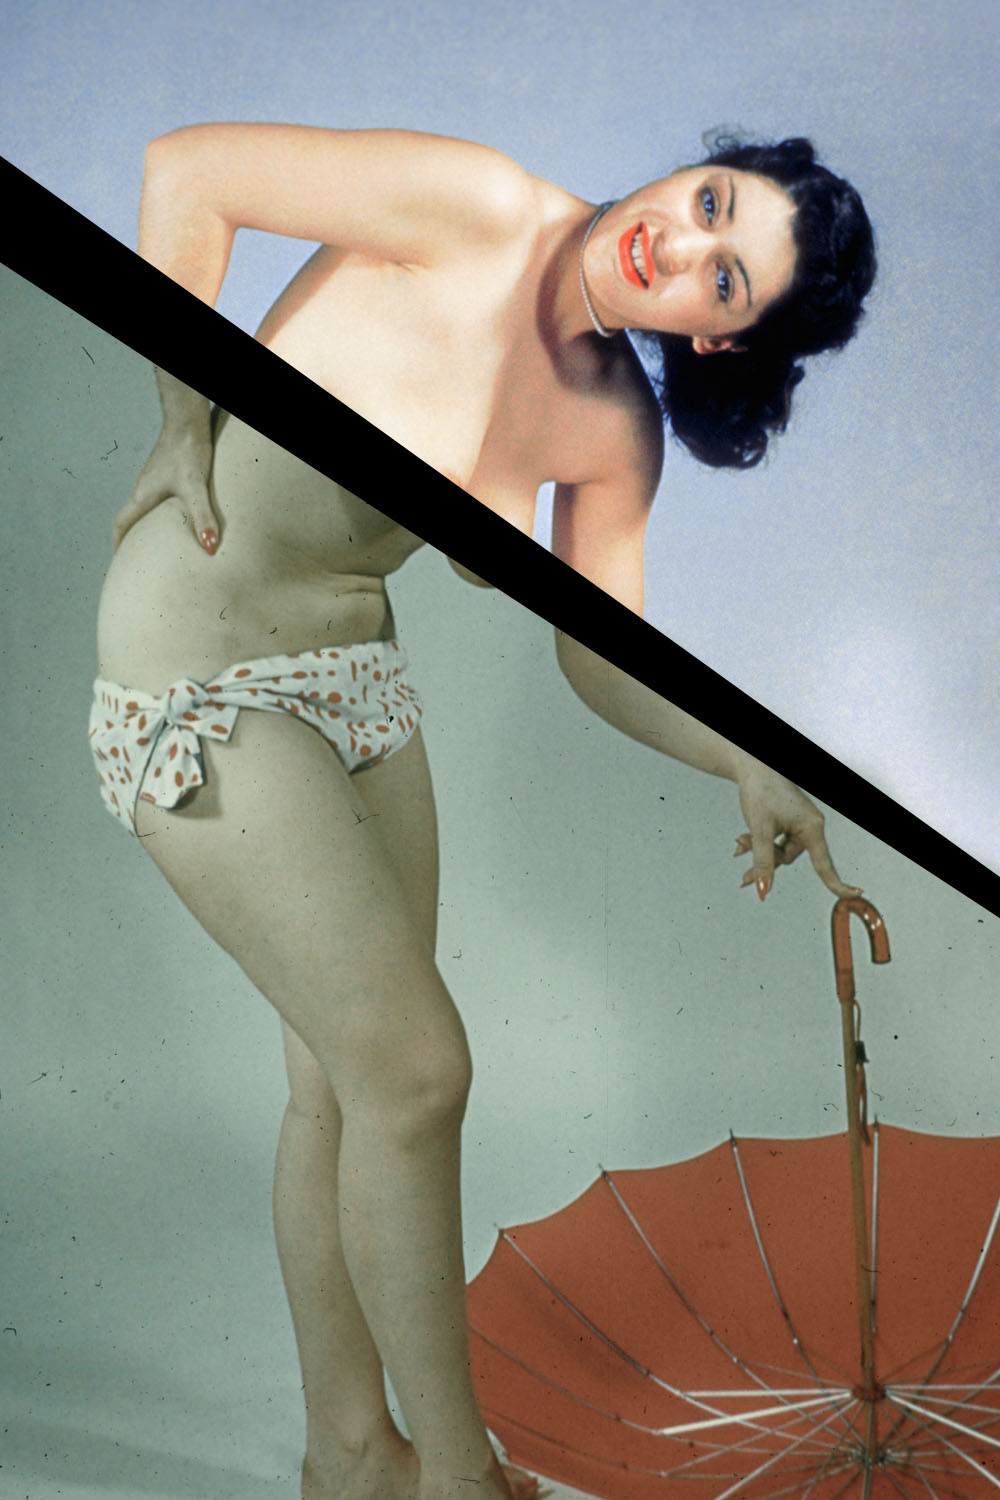 1950s-era pinup of a topless woman with a red umbrella.